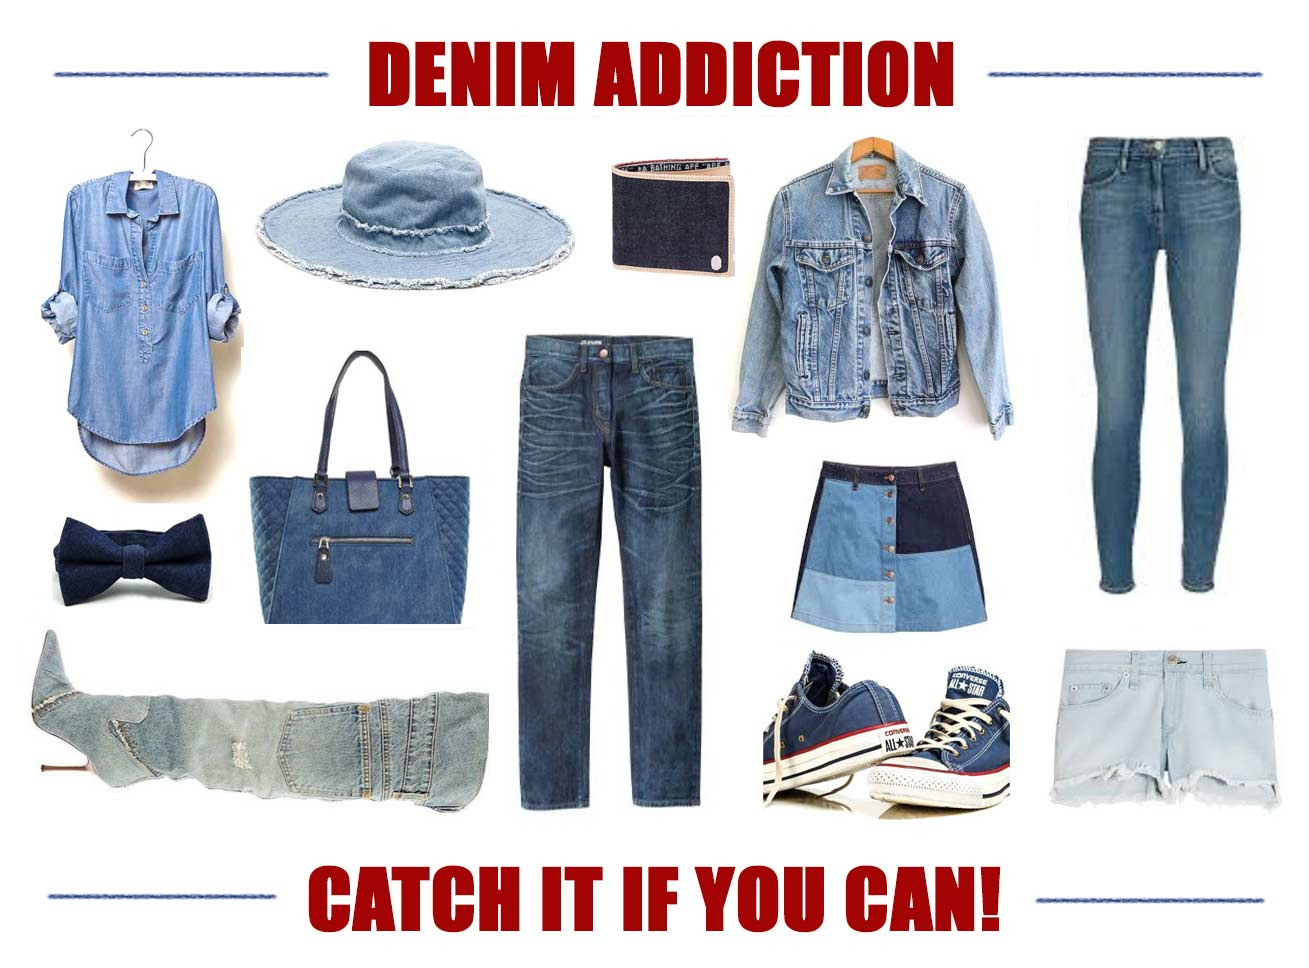 jeans-denim-addiction